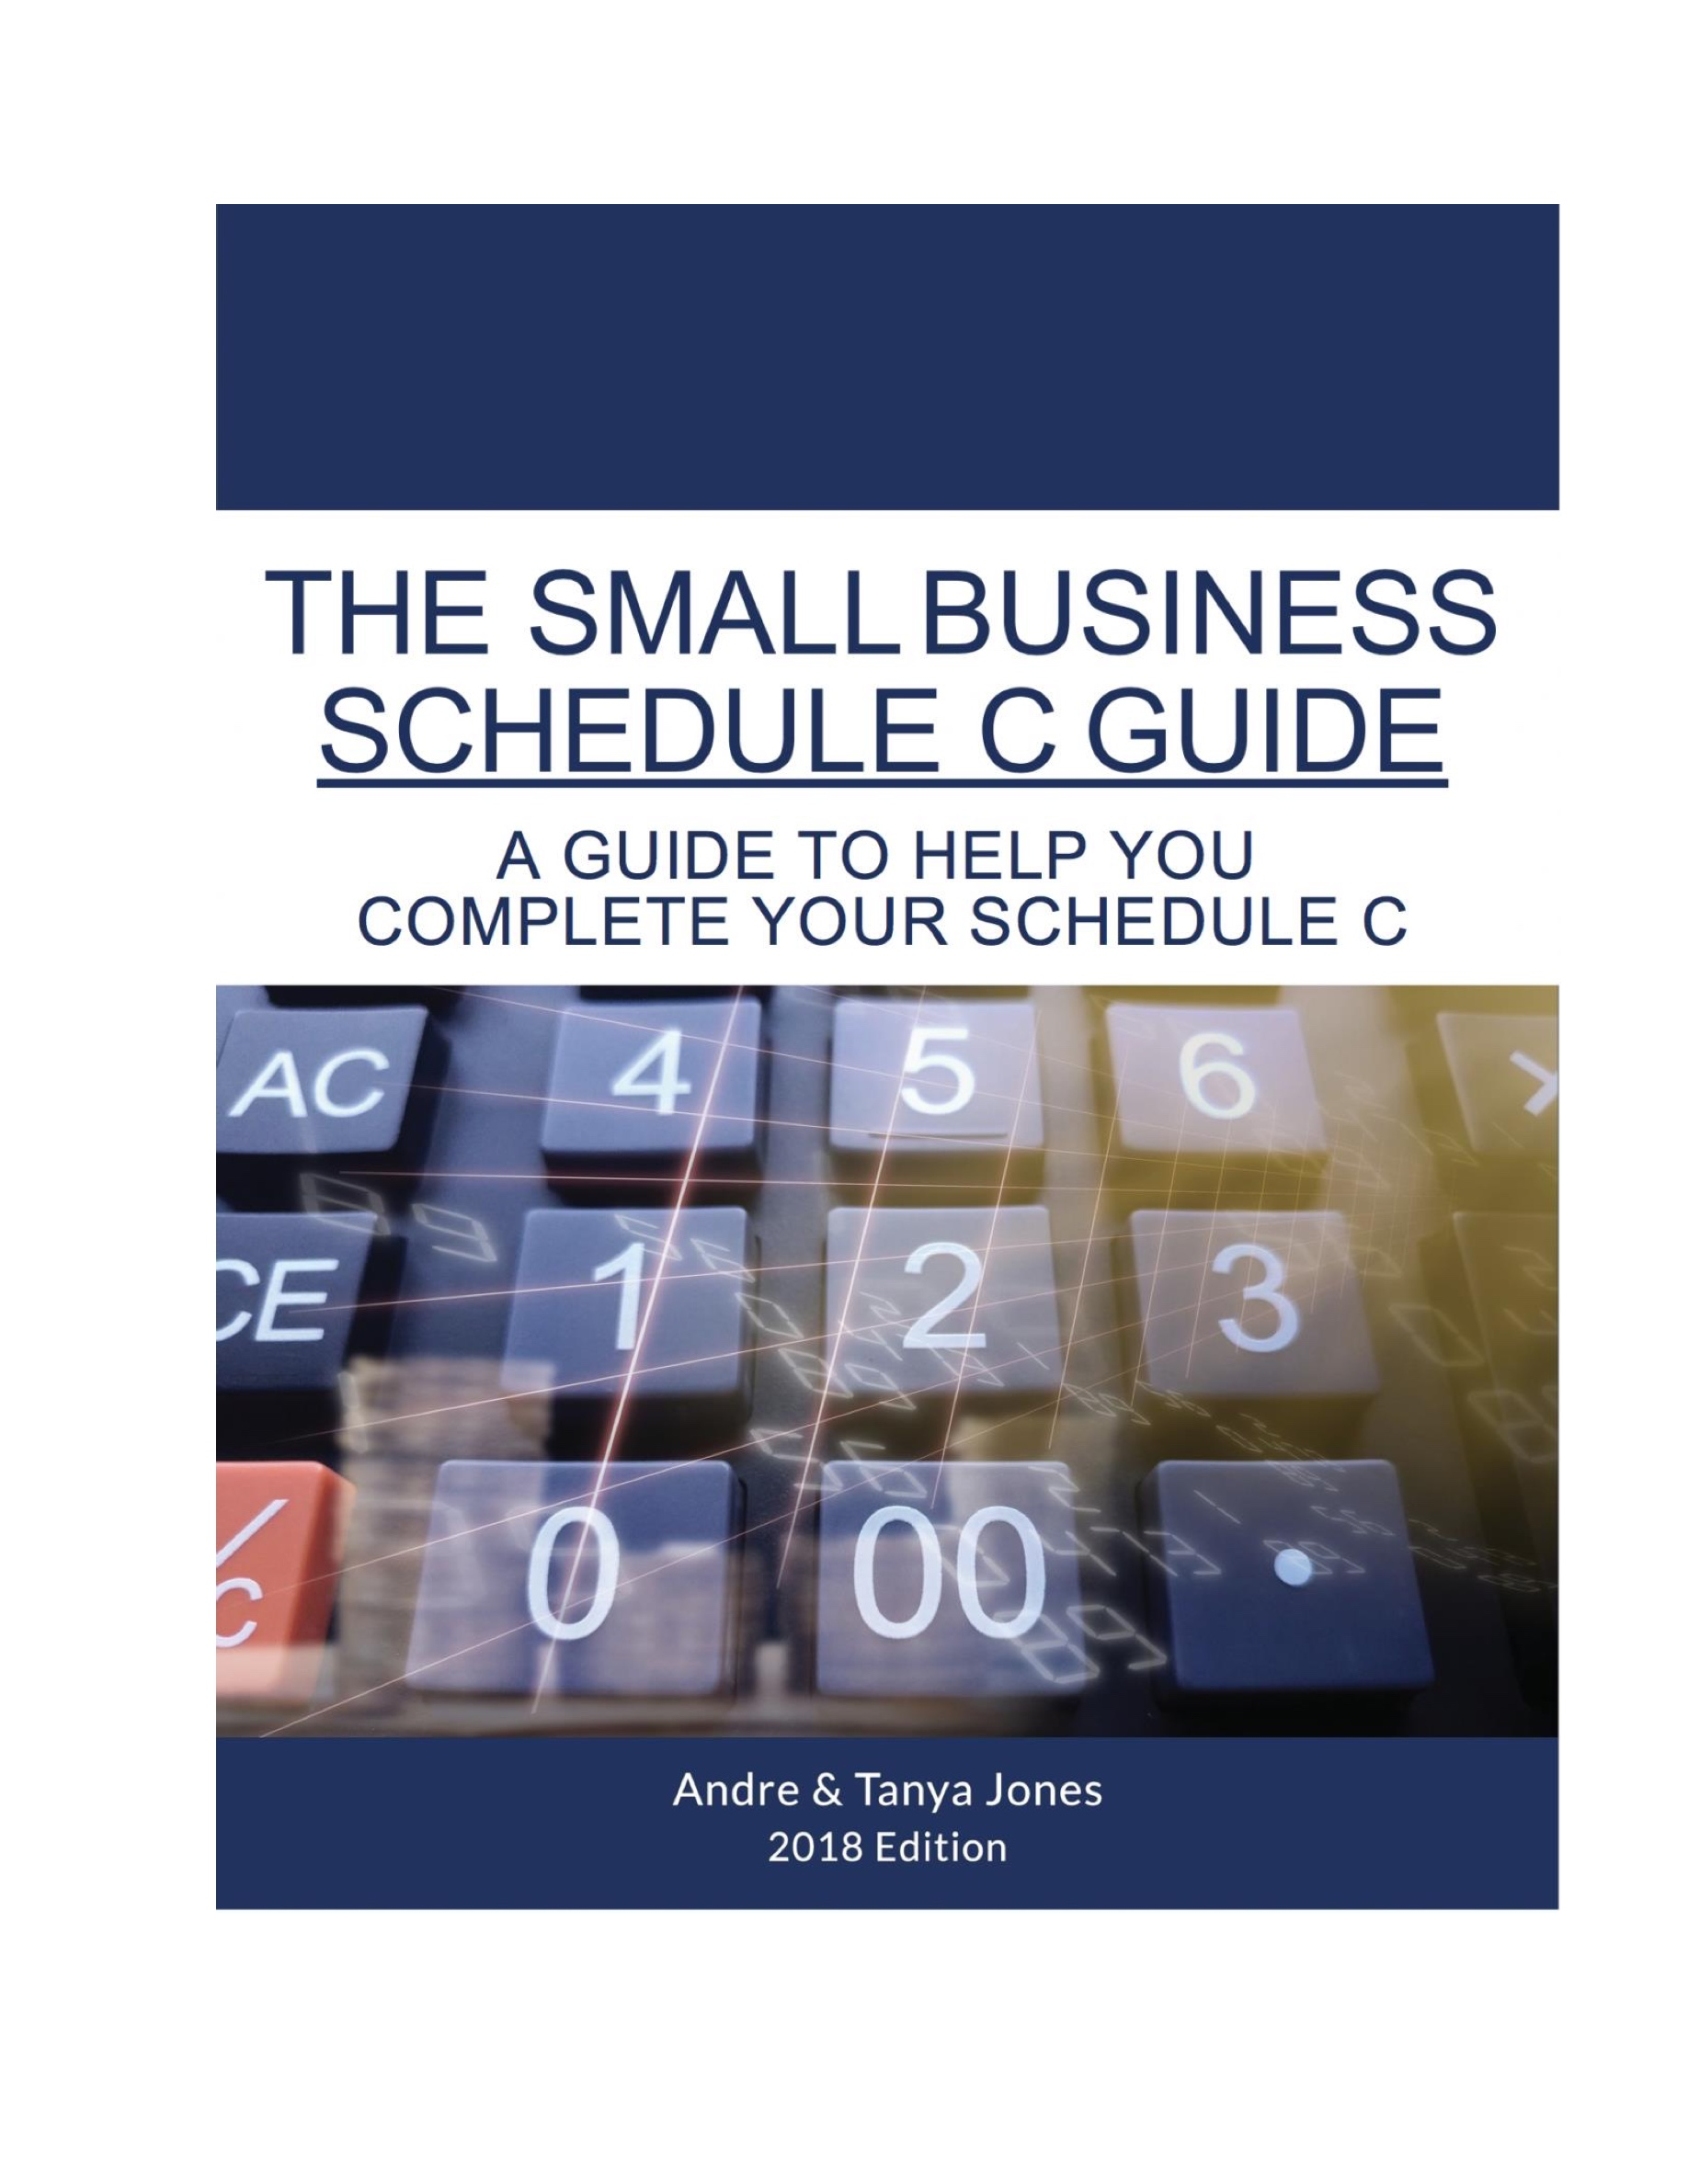 The Small Business Schedule C Guide